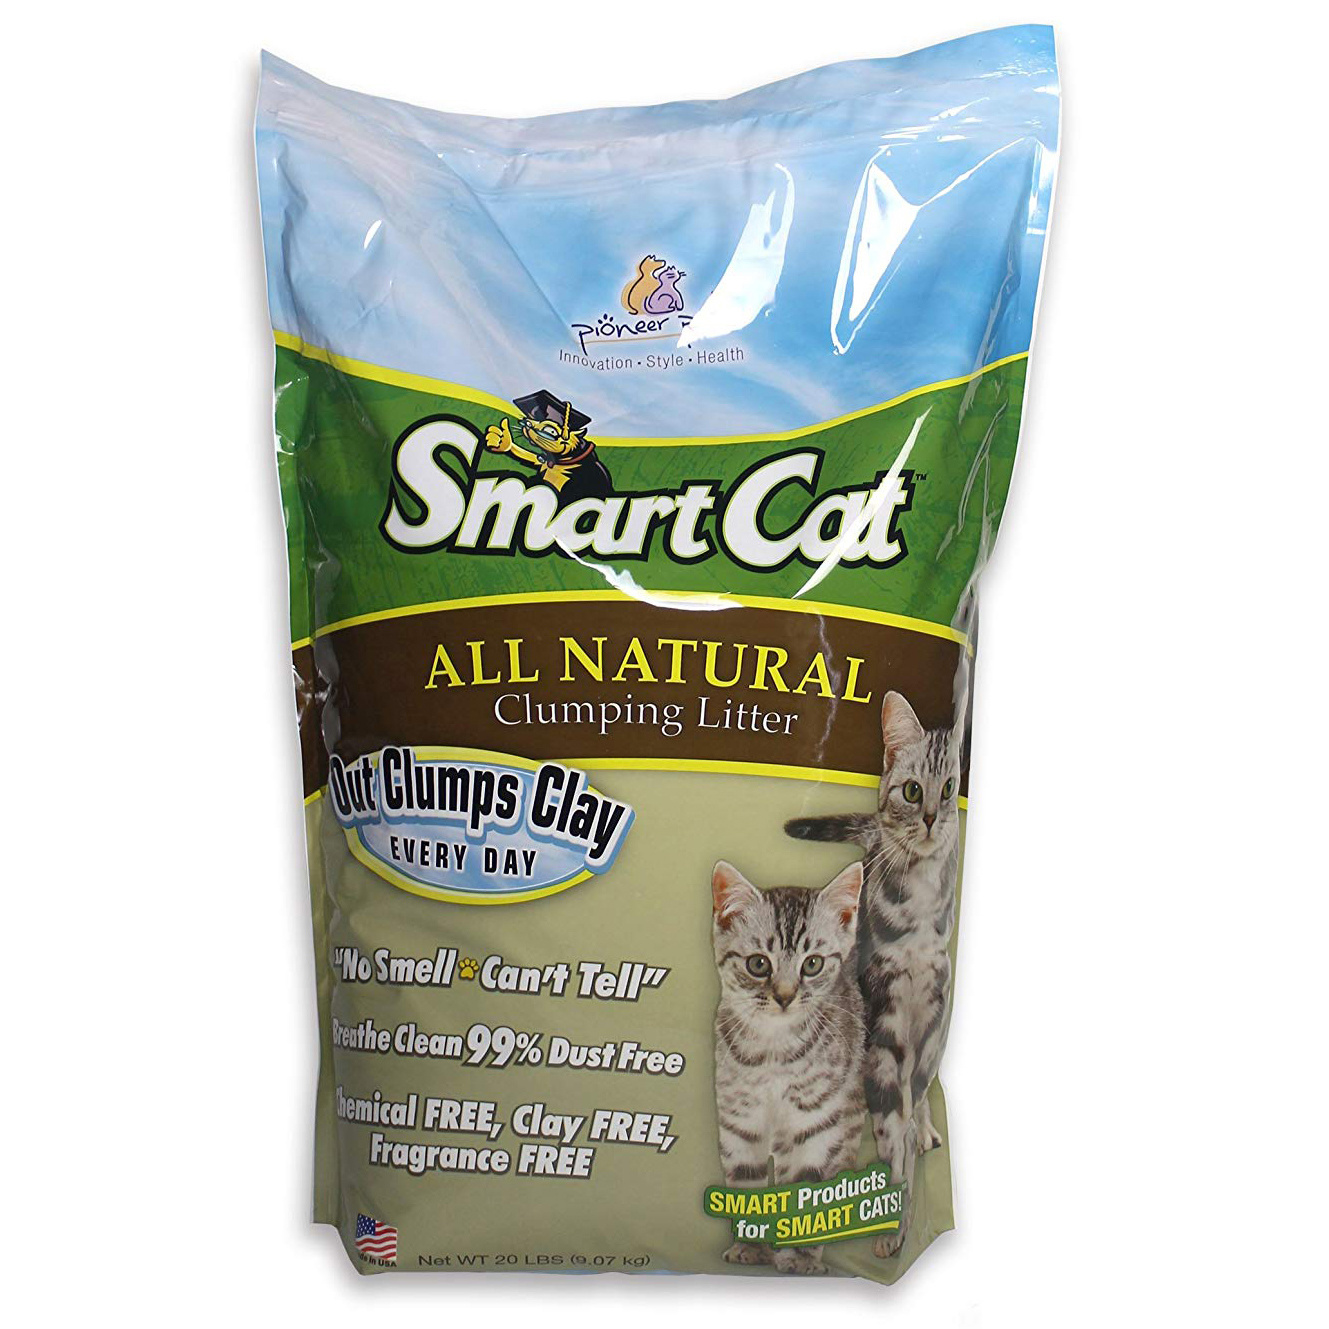 SMARTCAT, LLC / PIONEER PET PRODUCTS SmartCat Clumping Litter